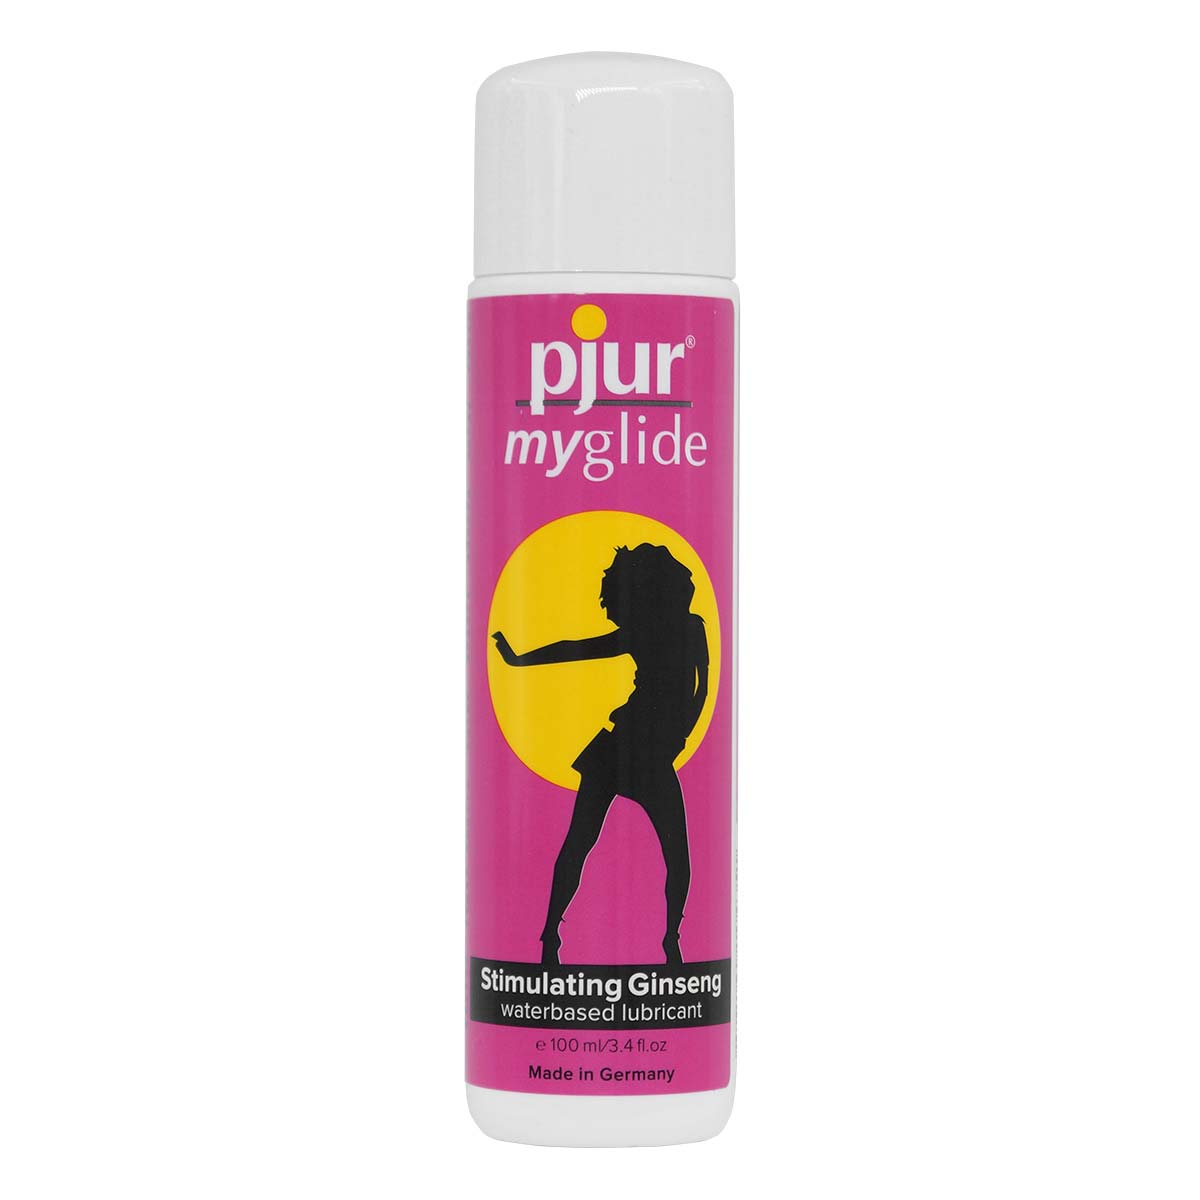 pjur myglide 100ml Water-based Lubricant (Defective Packaging)